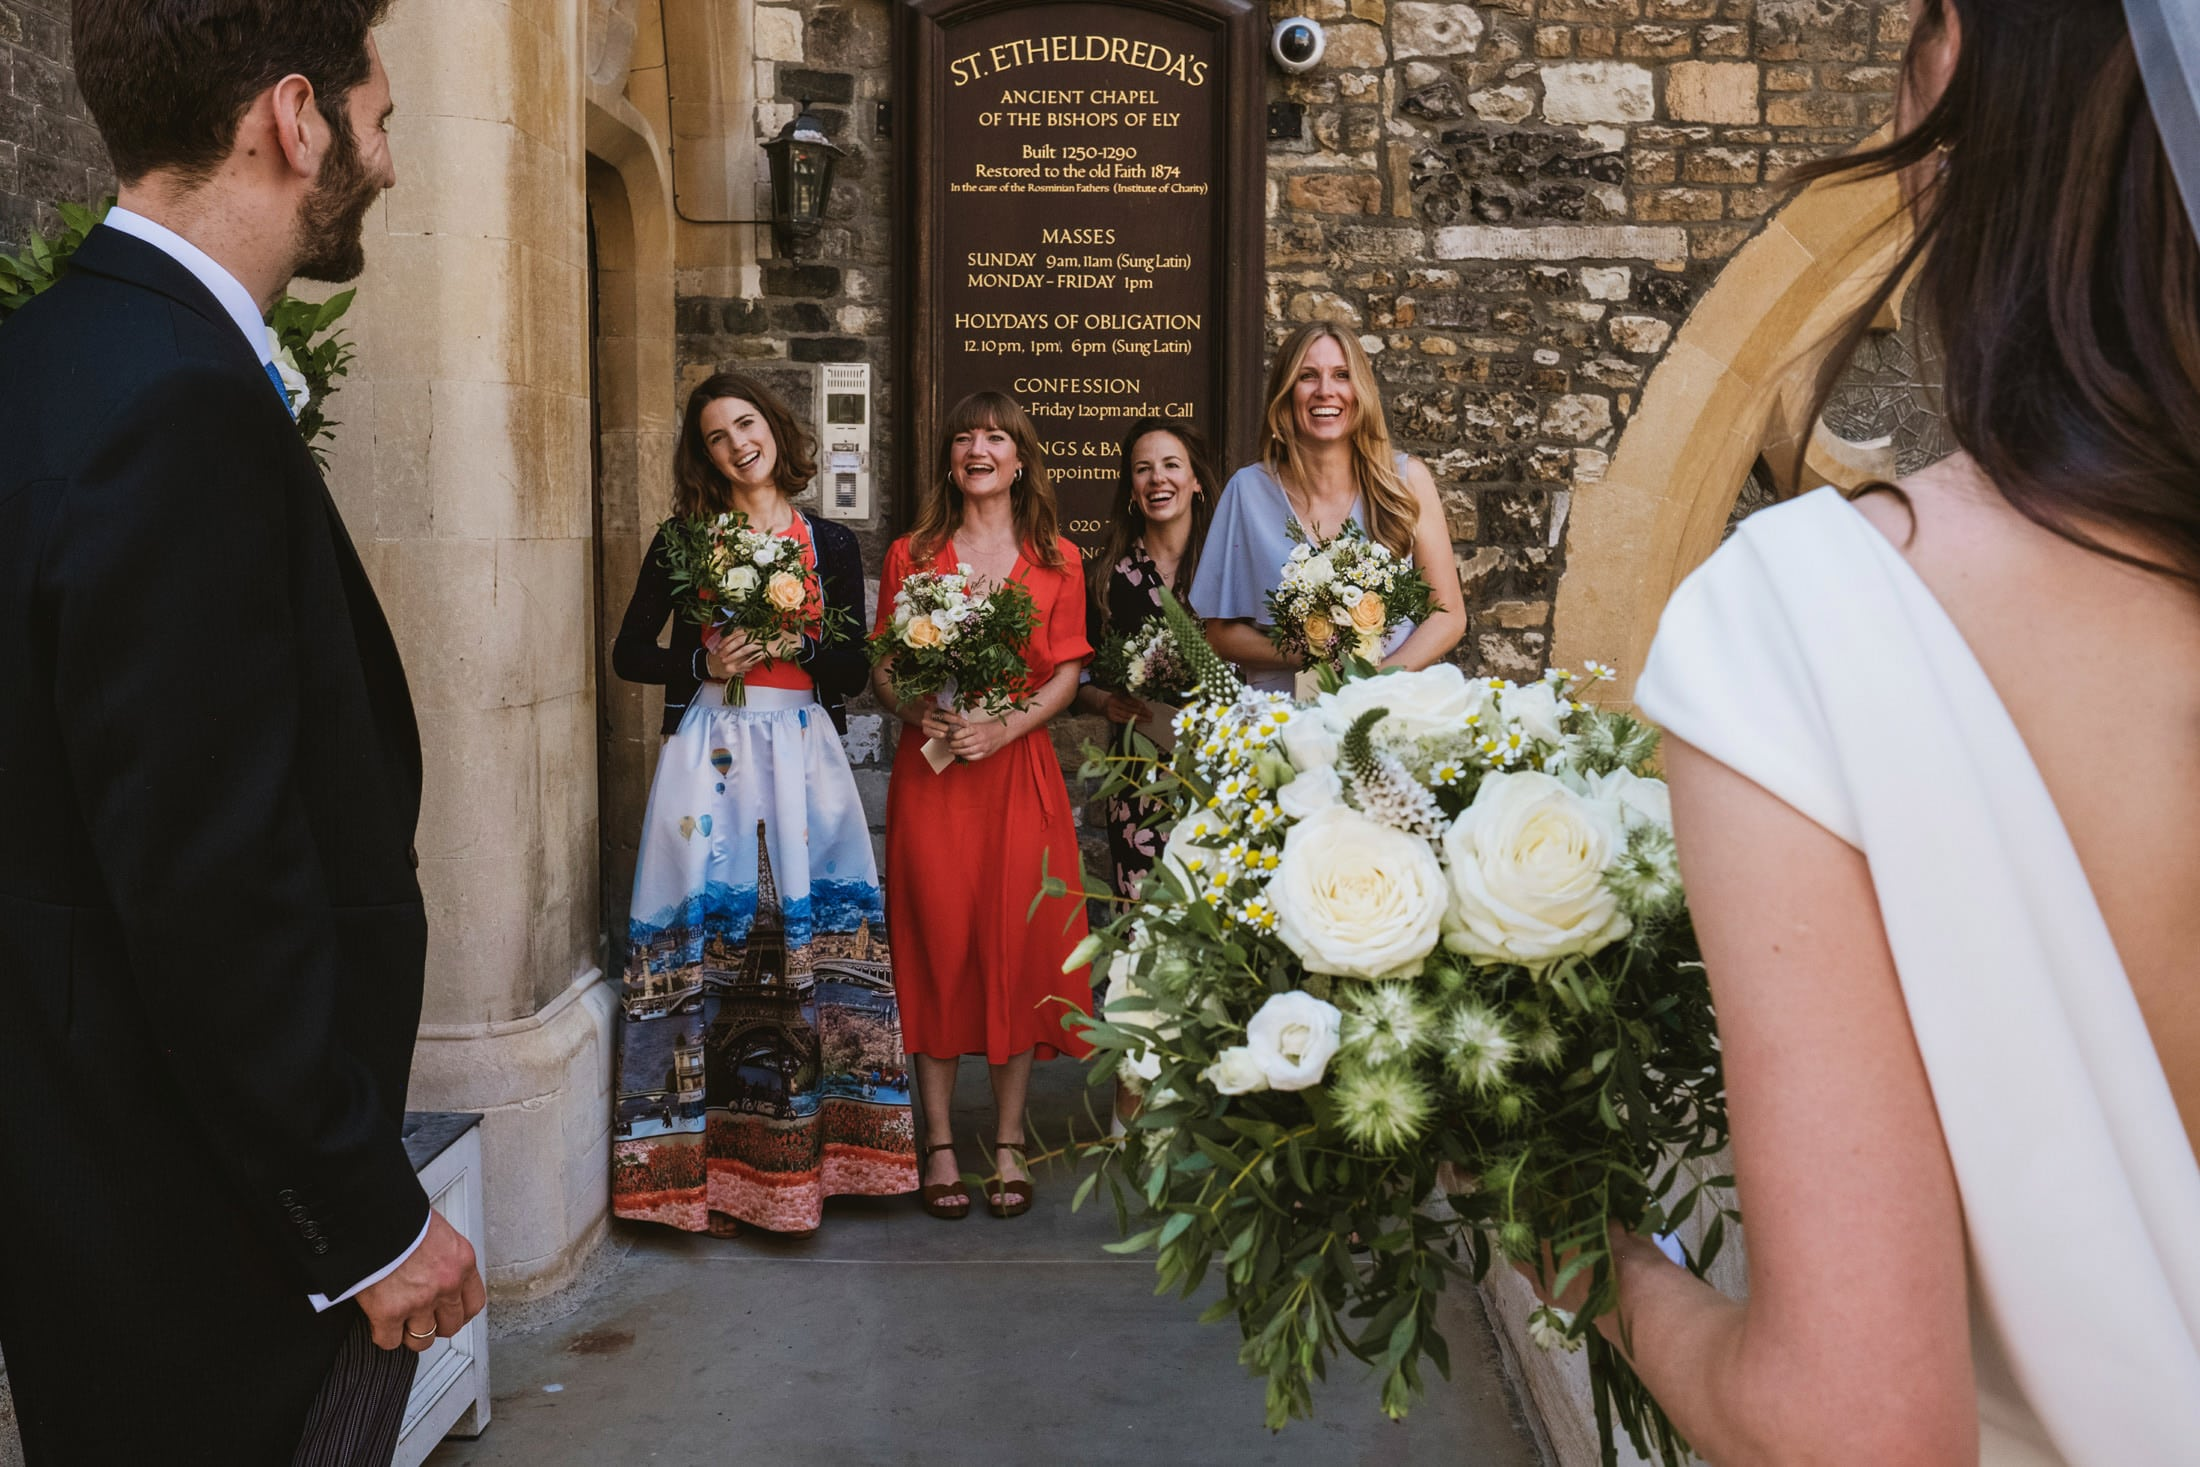 Right of the frame we see the shoulder of a bride holding her bouquet. To her left is her groom. Both look back towards the four bridesmaids smiling at them and framed between them. Intimate London wedding photography outside St Etheldreda's Church